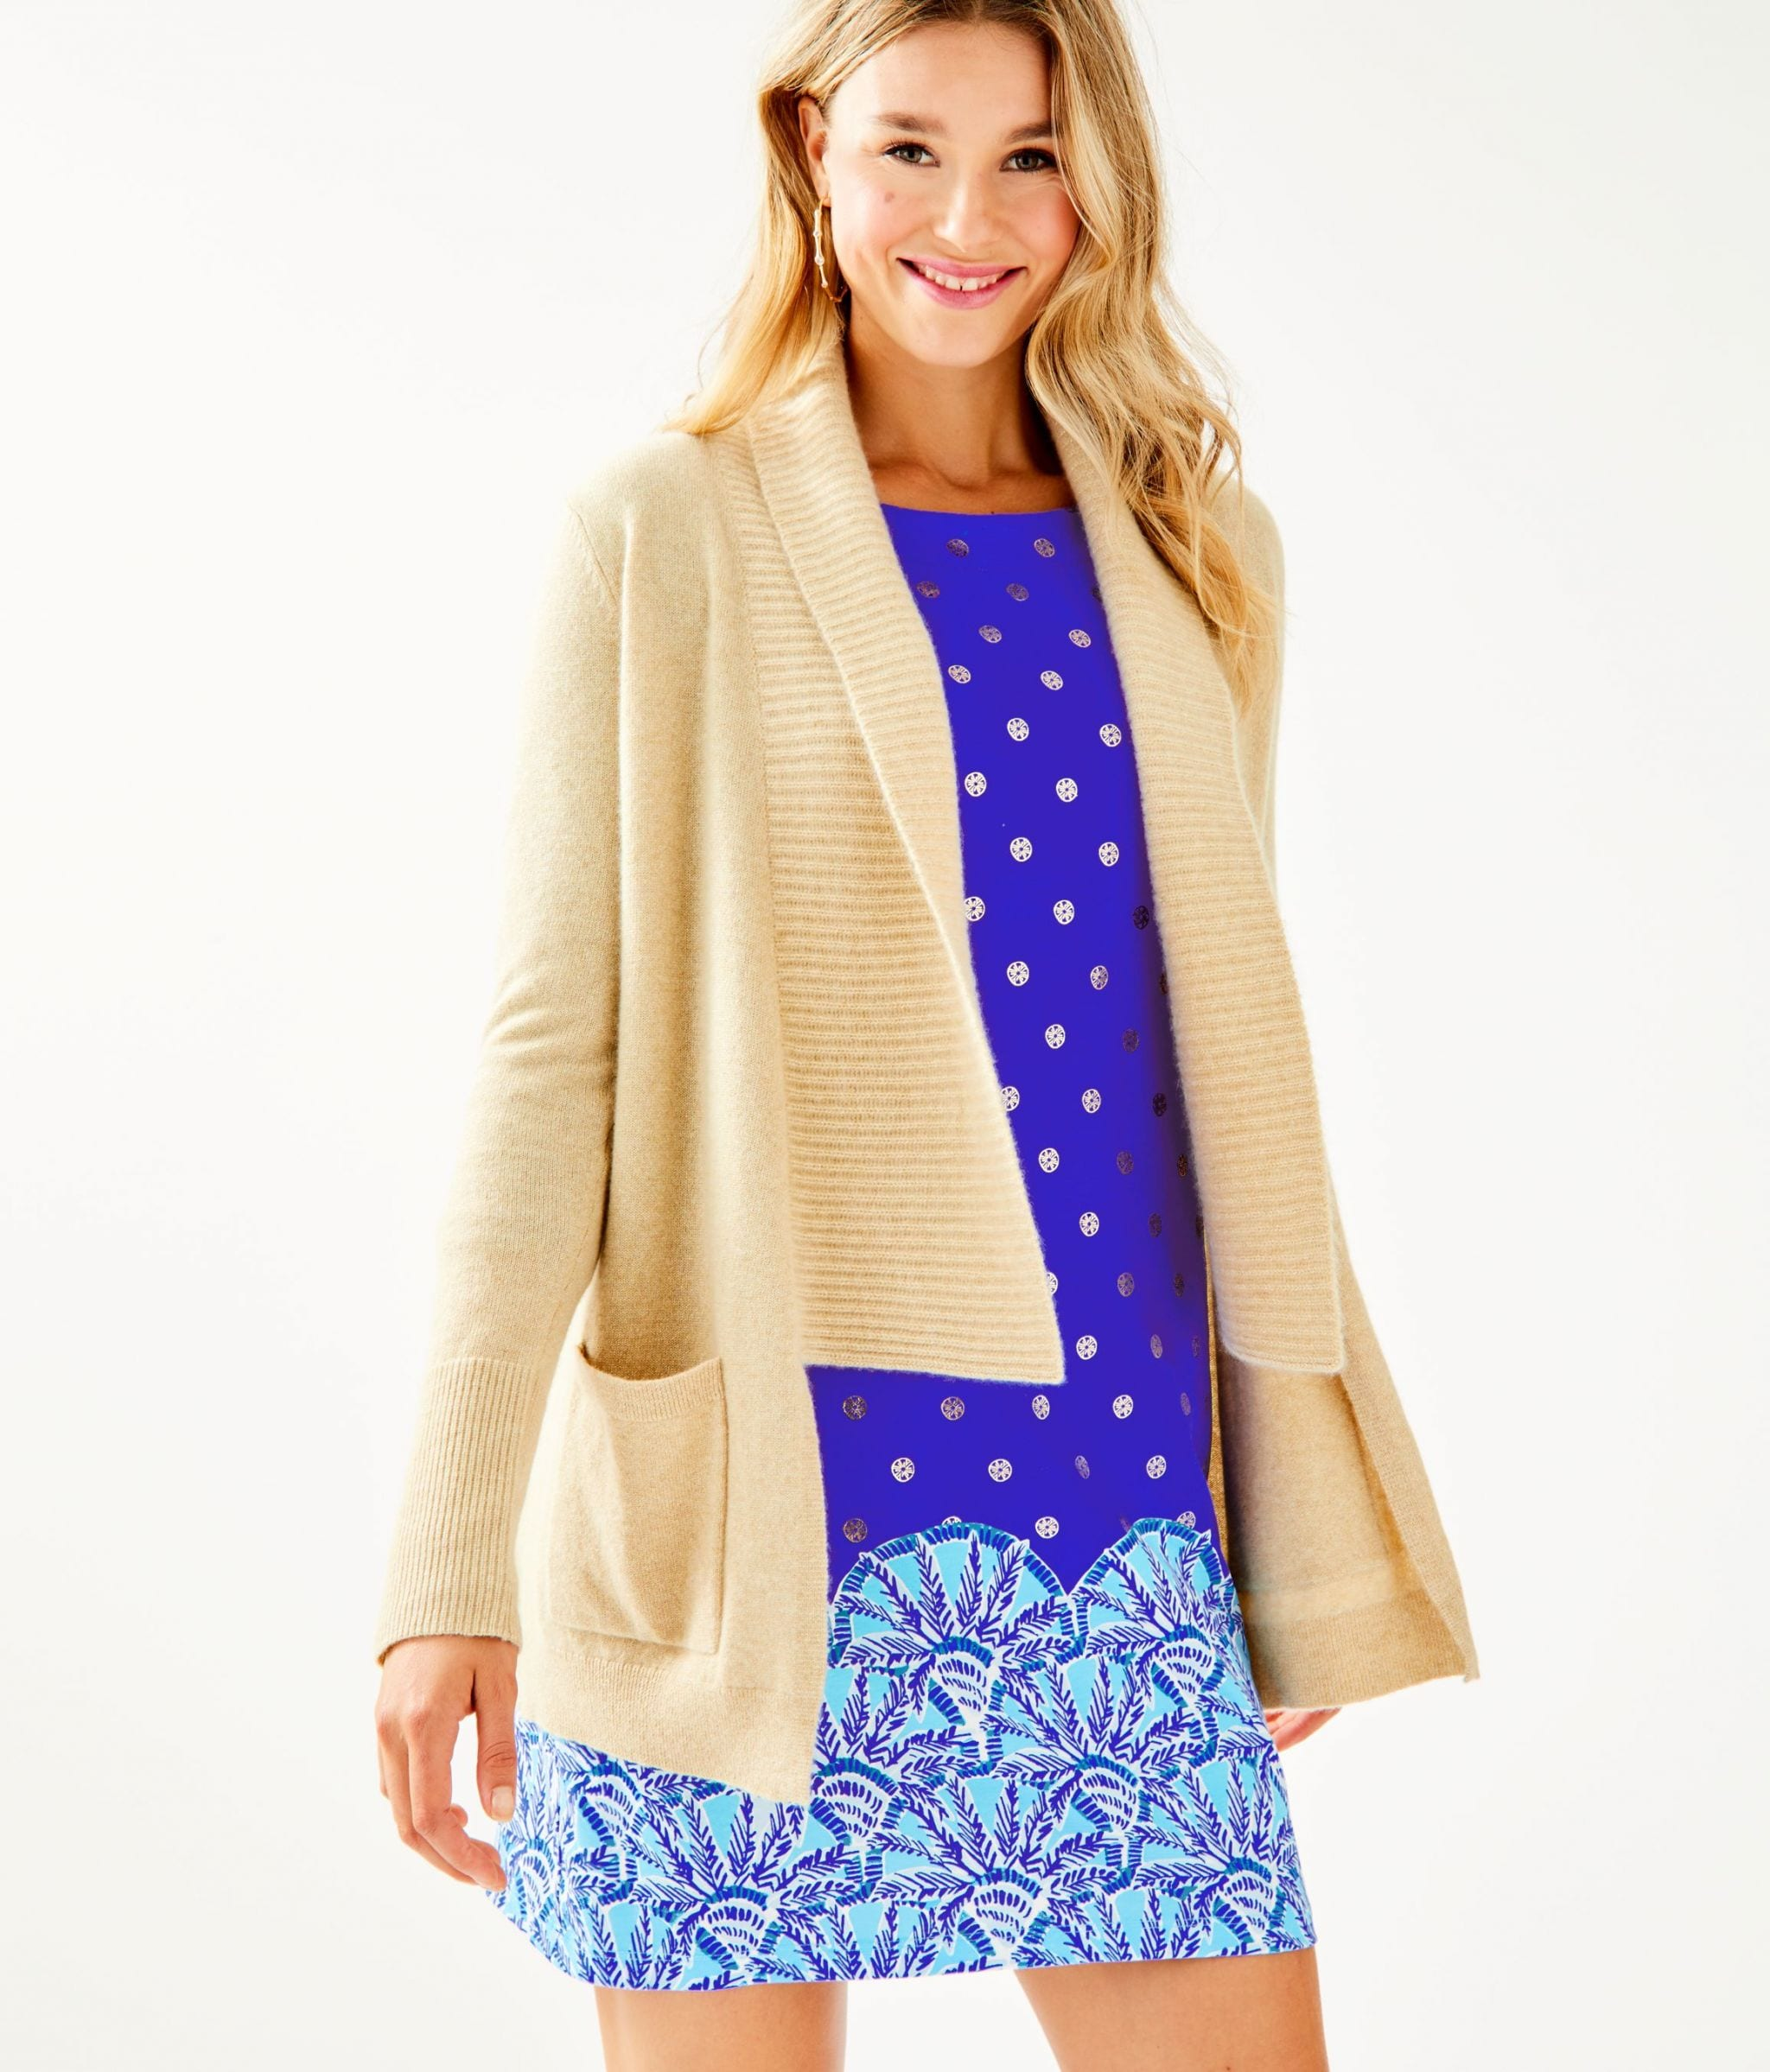 Norwood Cashmere Cardigan, Originally $278, $99